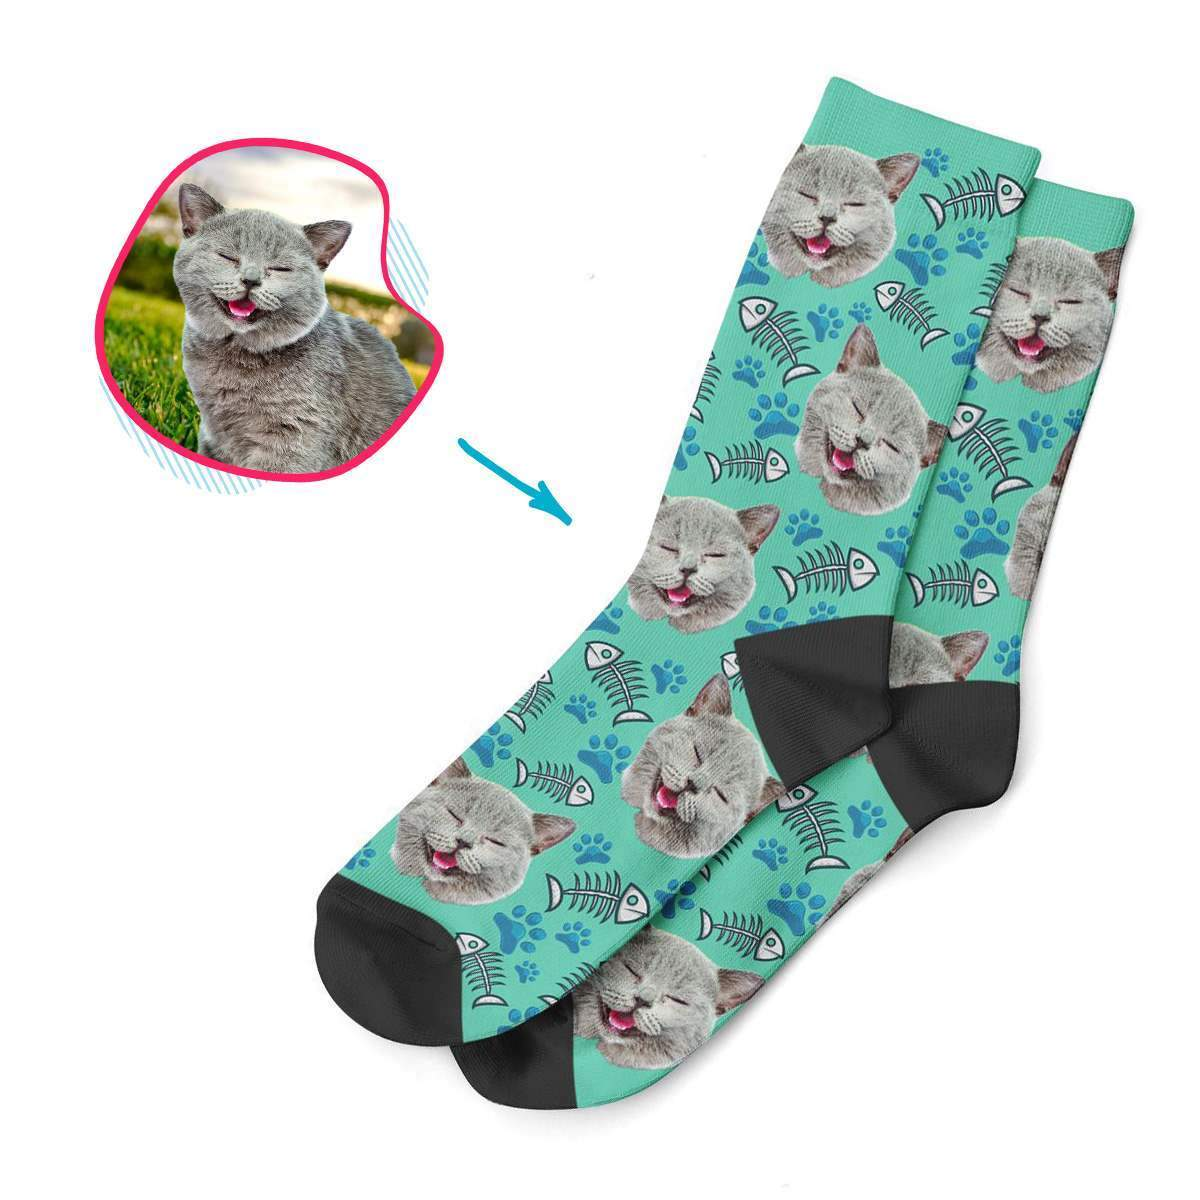 mint Cat socks personalized with photo of face printed on them